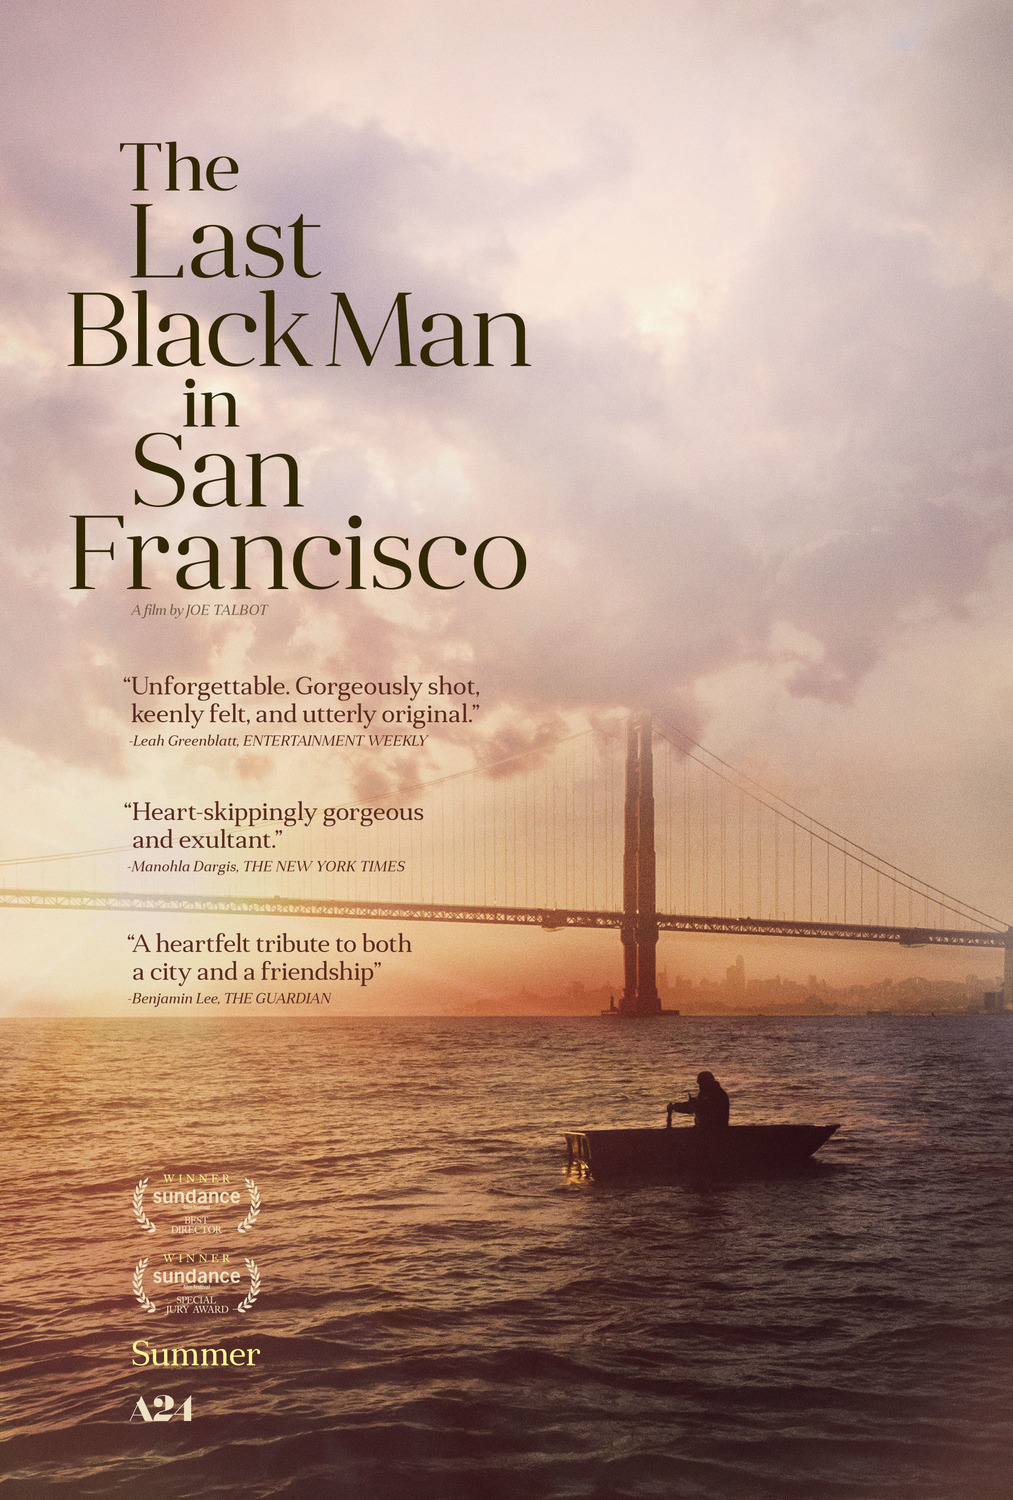 Extra Large Movie Poster Image for The Last Black Man in San Francisco